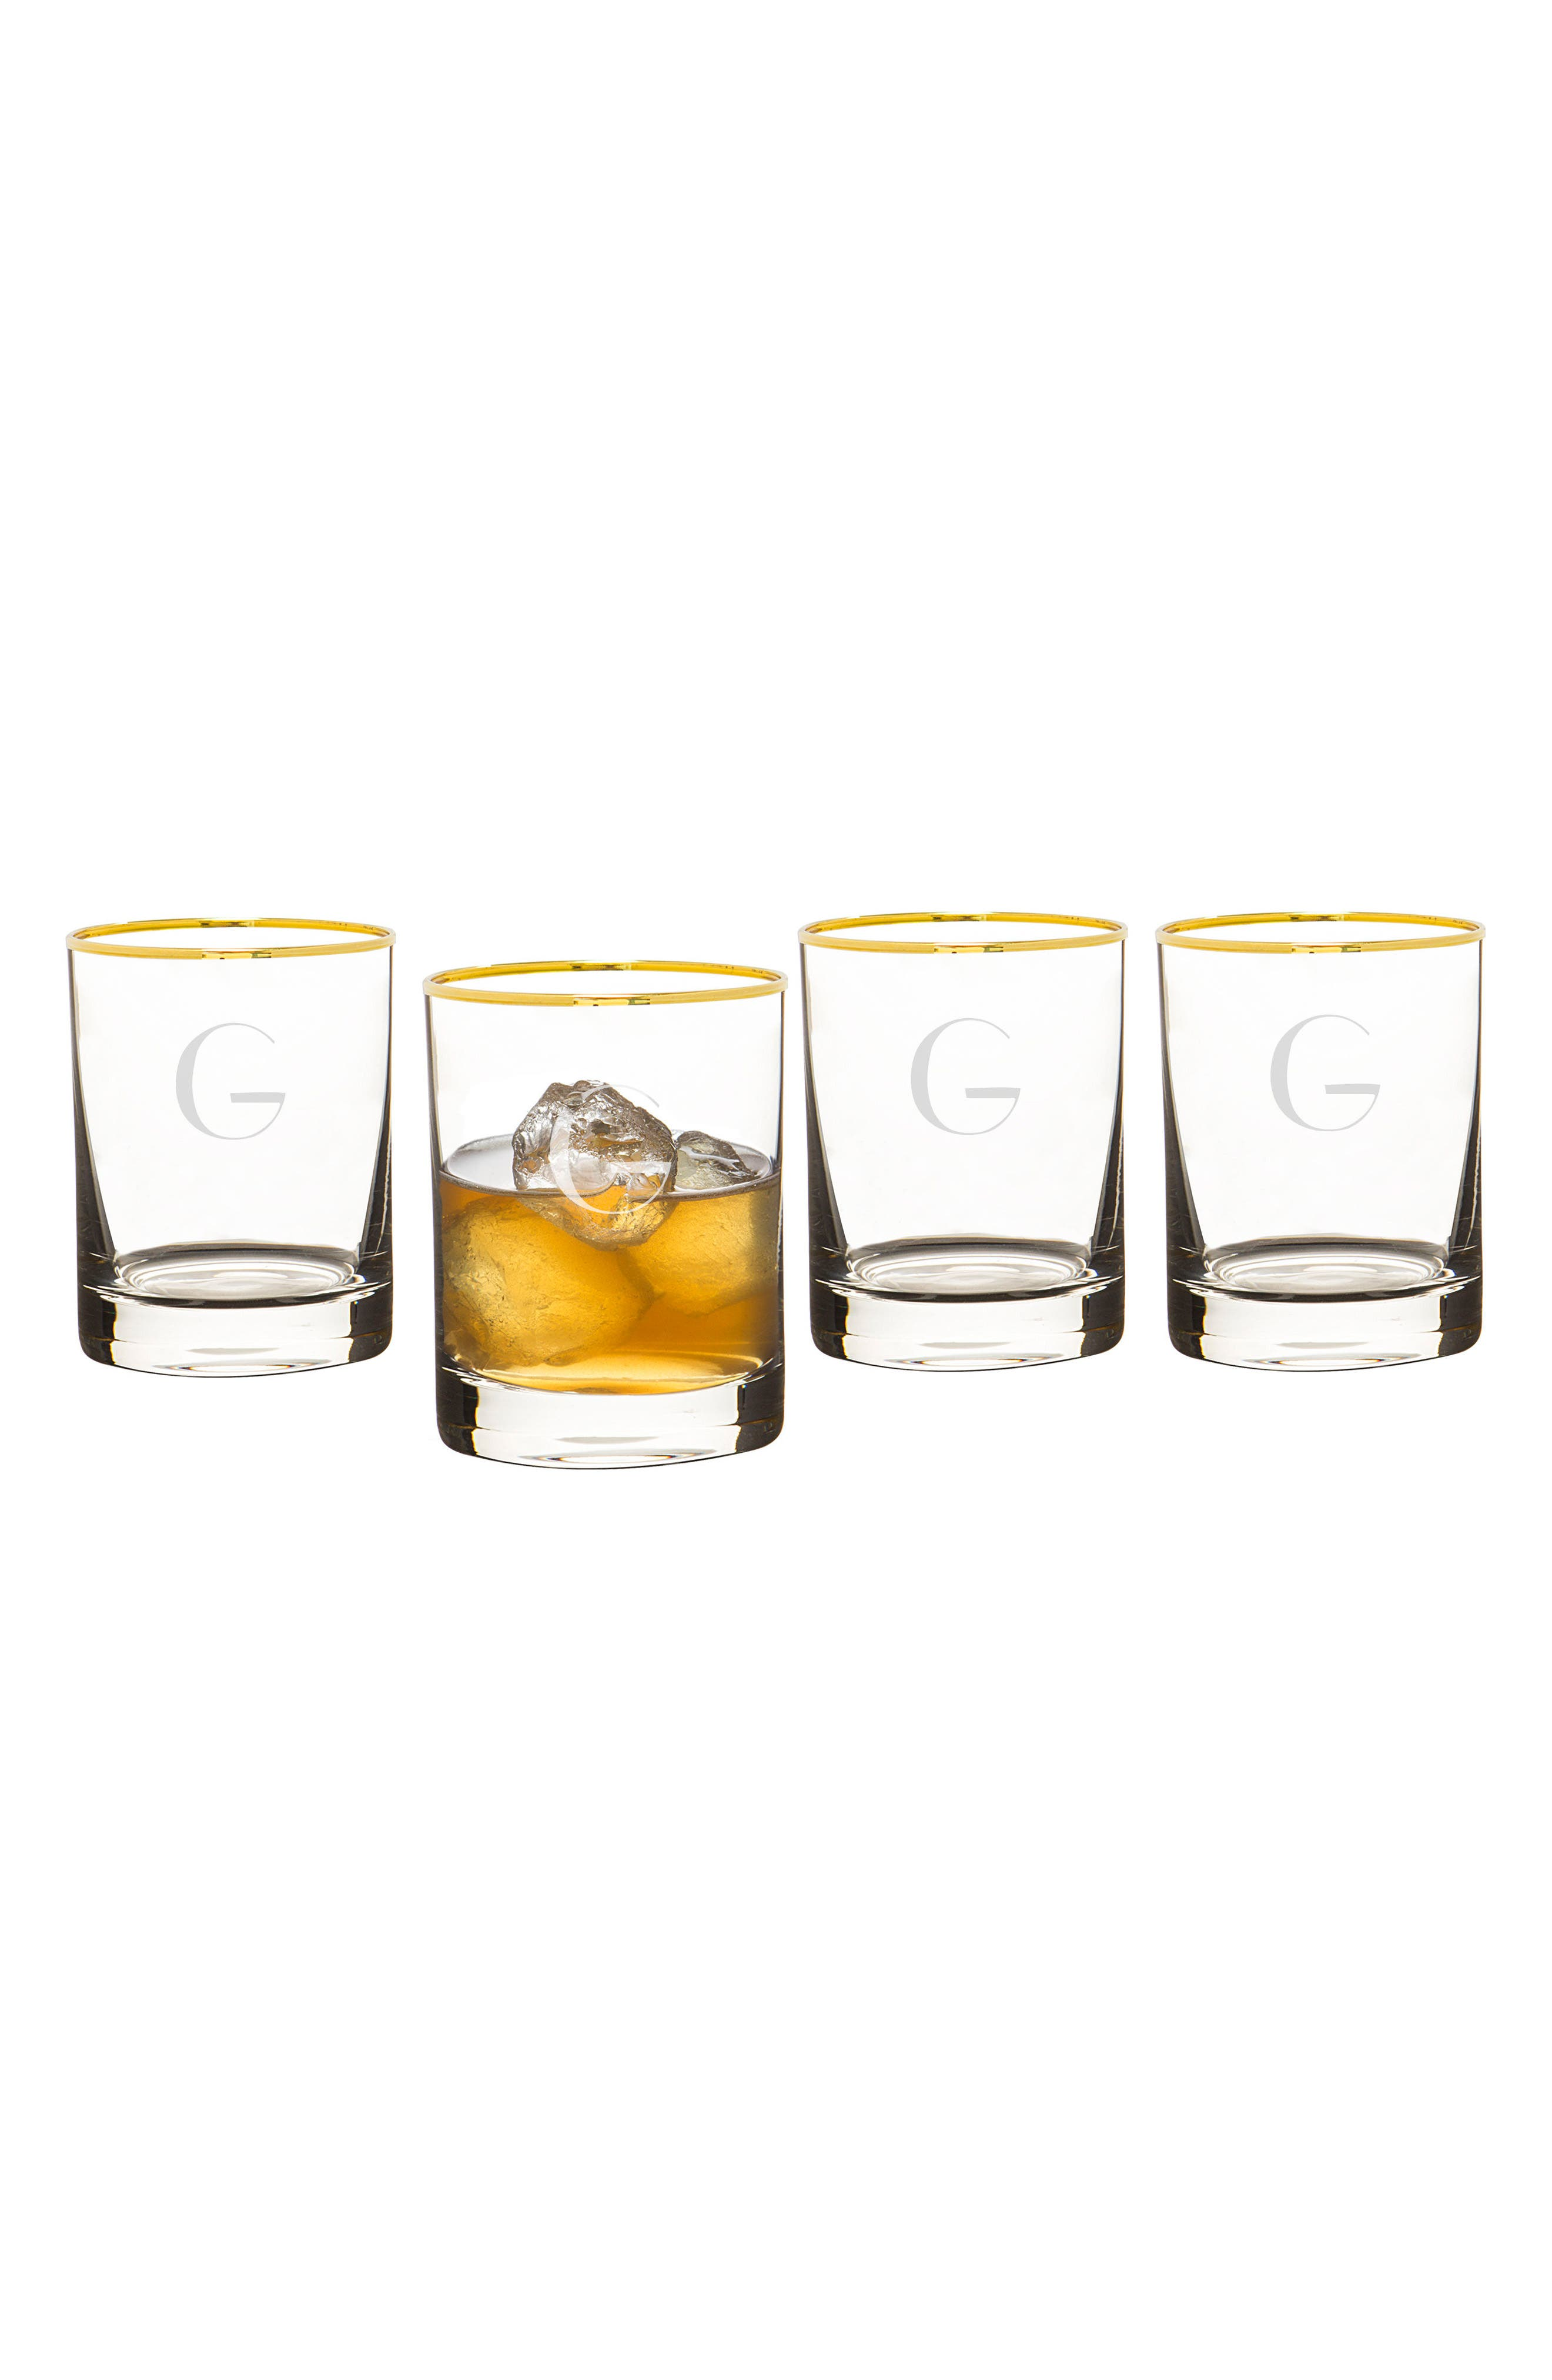 Monogram Set of 4 Double Old Fashioned Glasses,                             Main thumbnail 8, color,